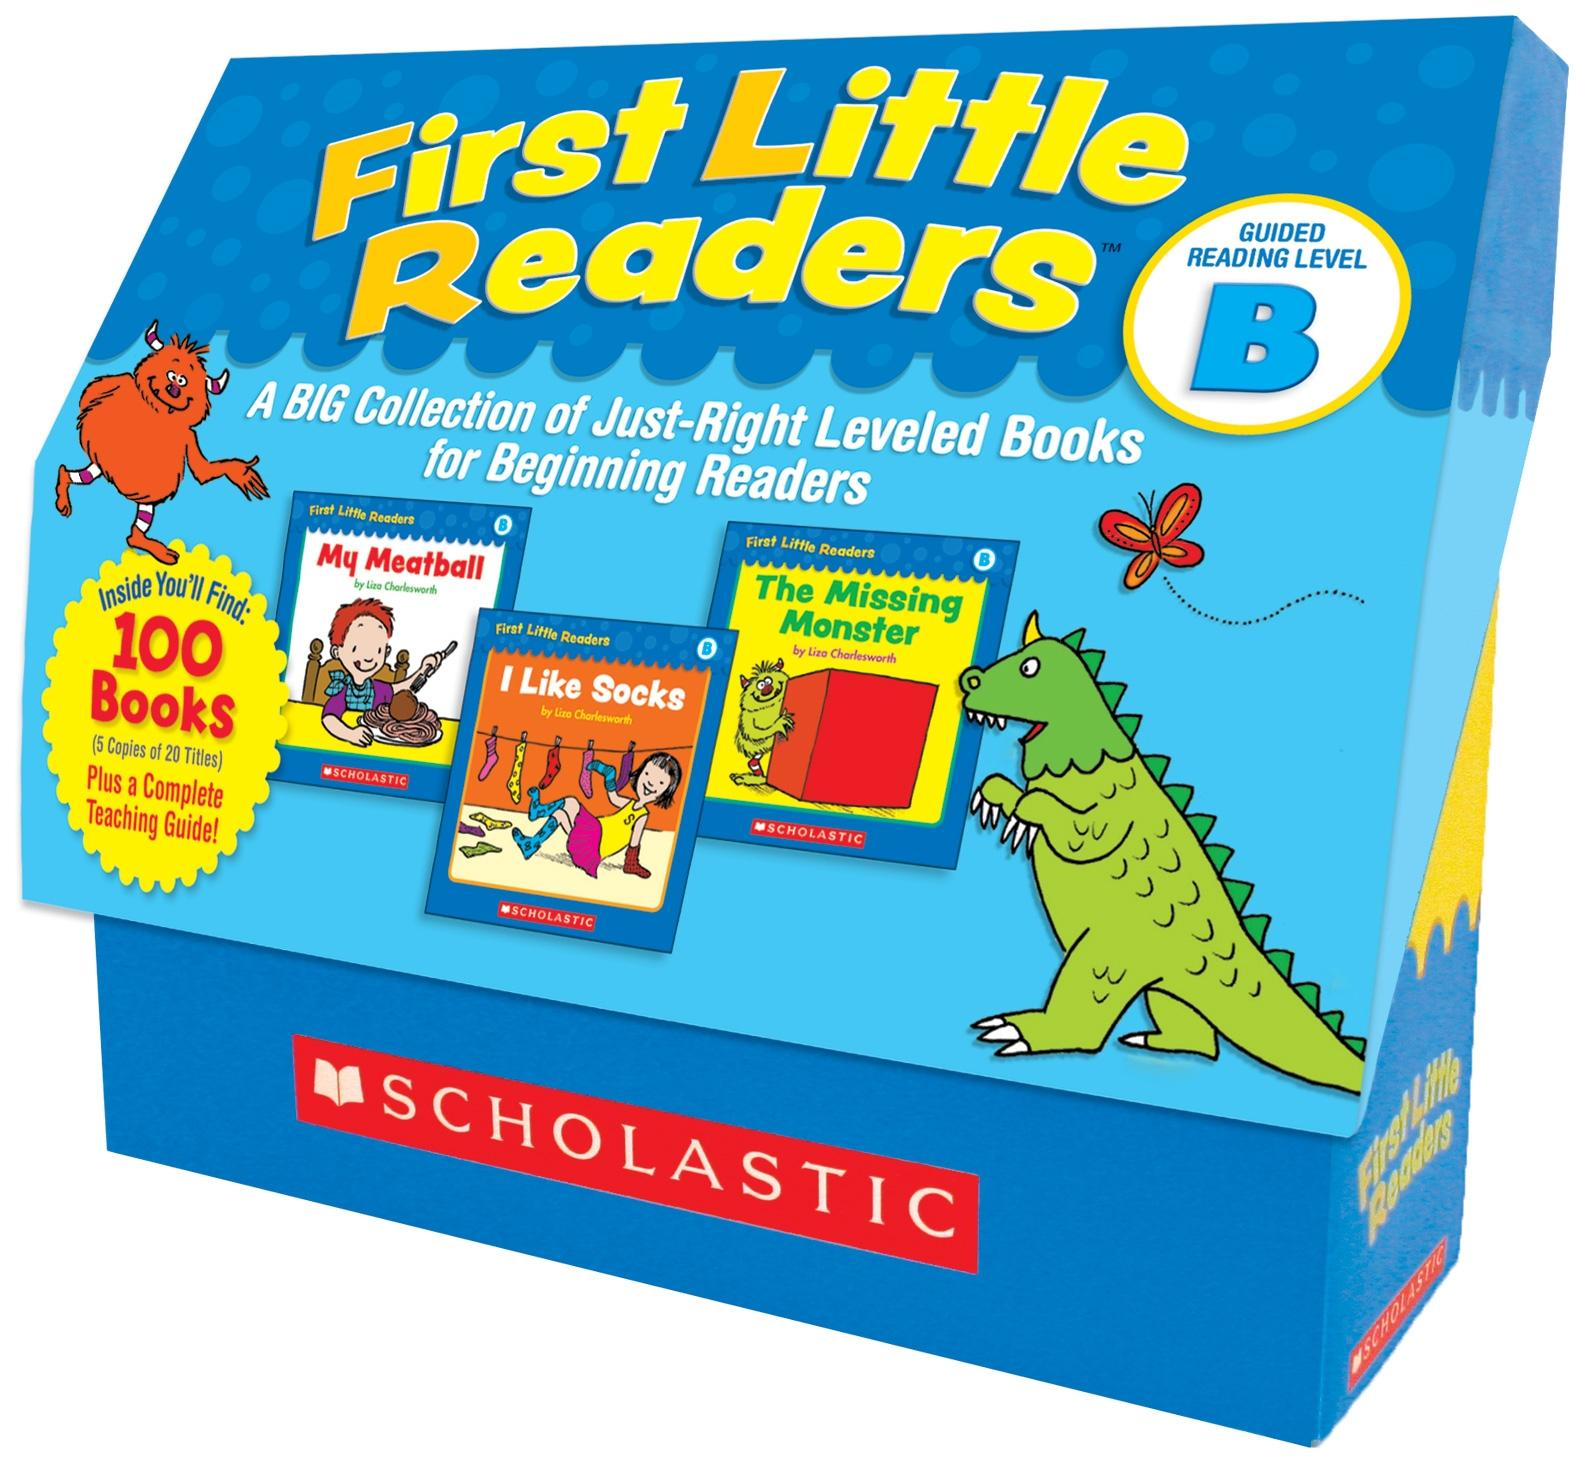 First Little Readers: Guided Reading Level B: A Big Collection of Just-Right Leveled Books for Beginning Readers (Other)